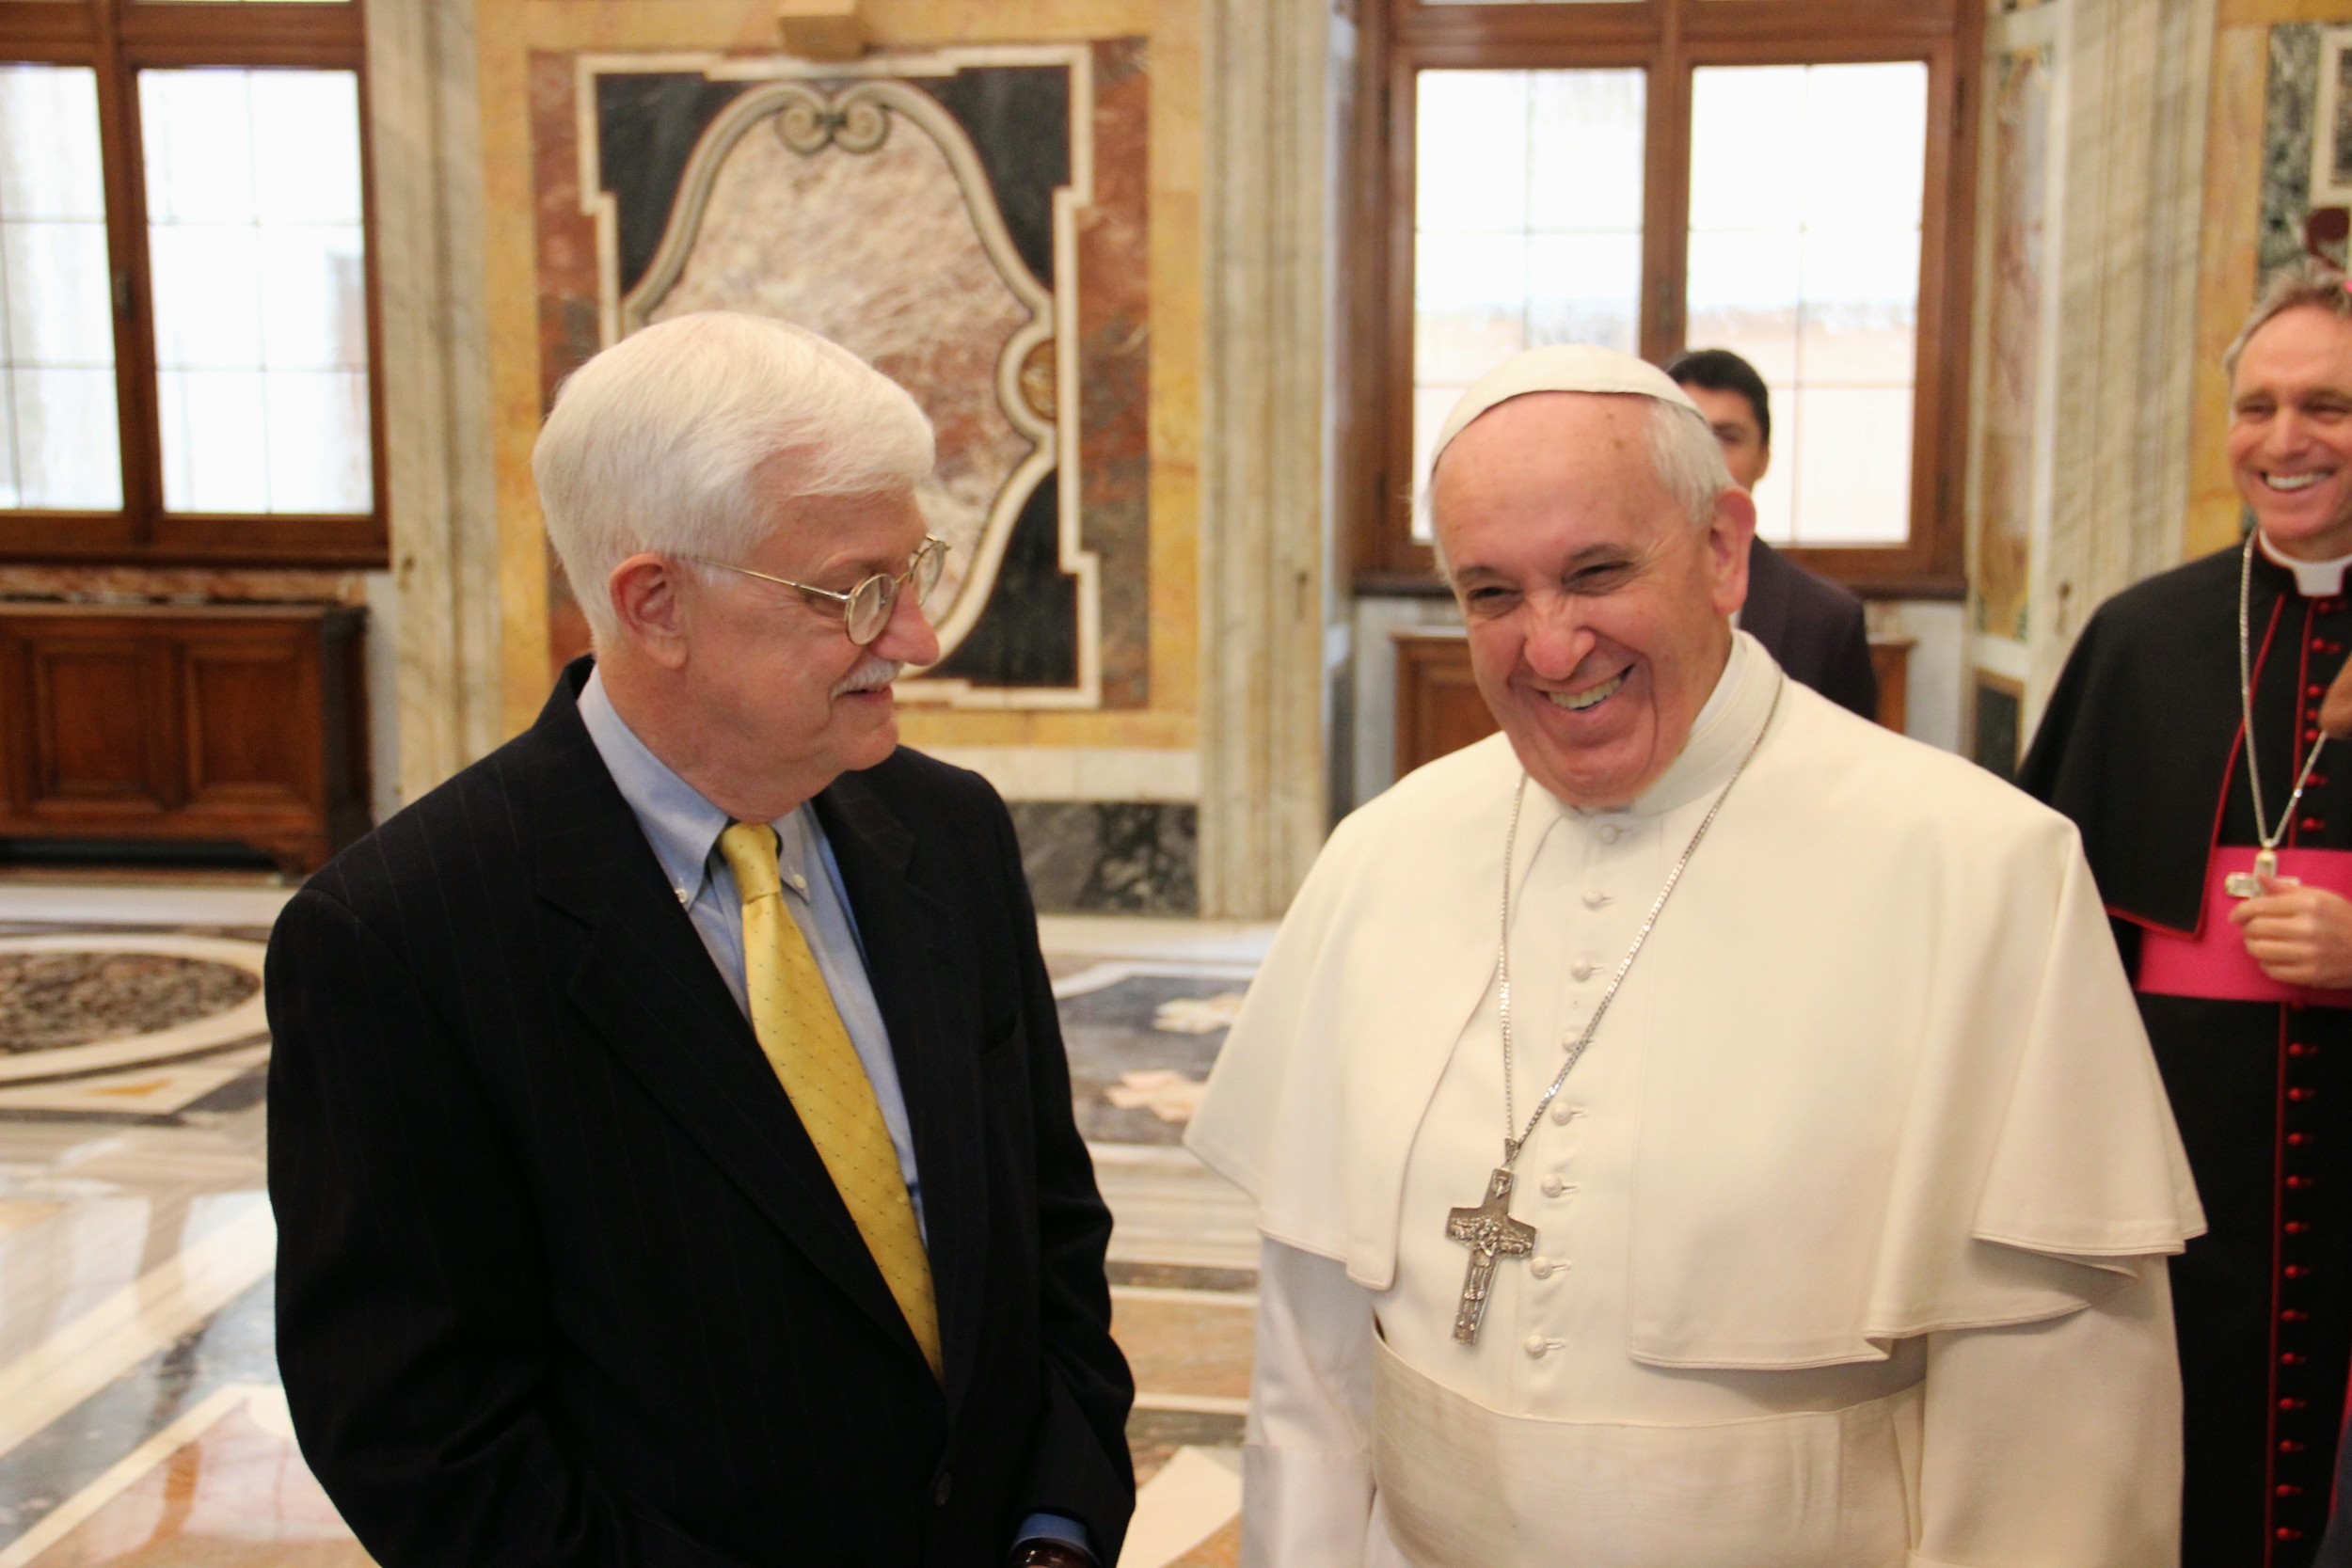 Tom Farr talks with Pope Francis during a special audience at the Vatican.